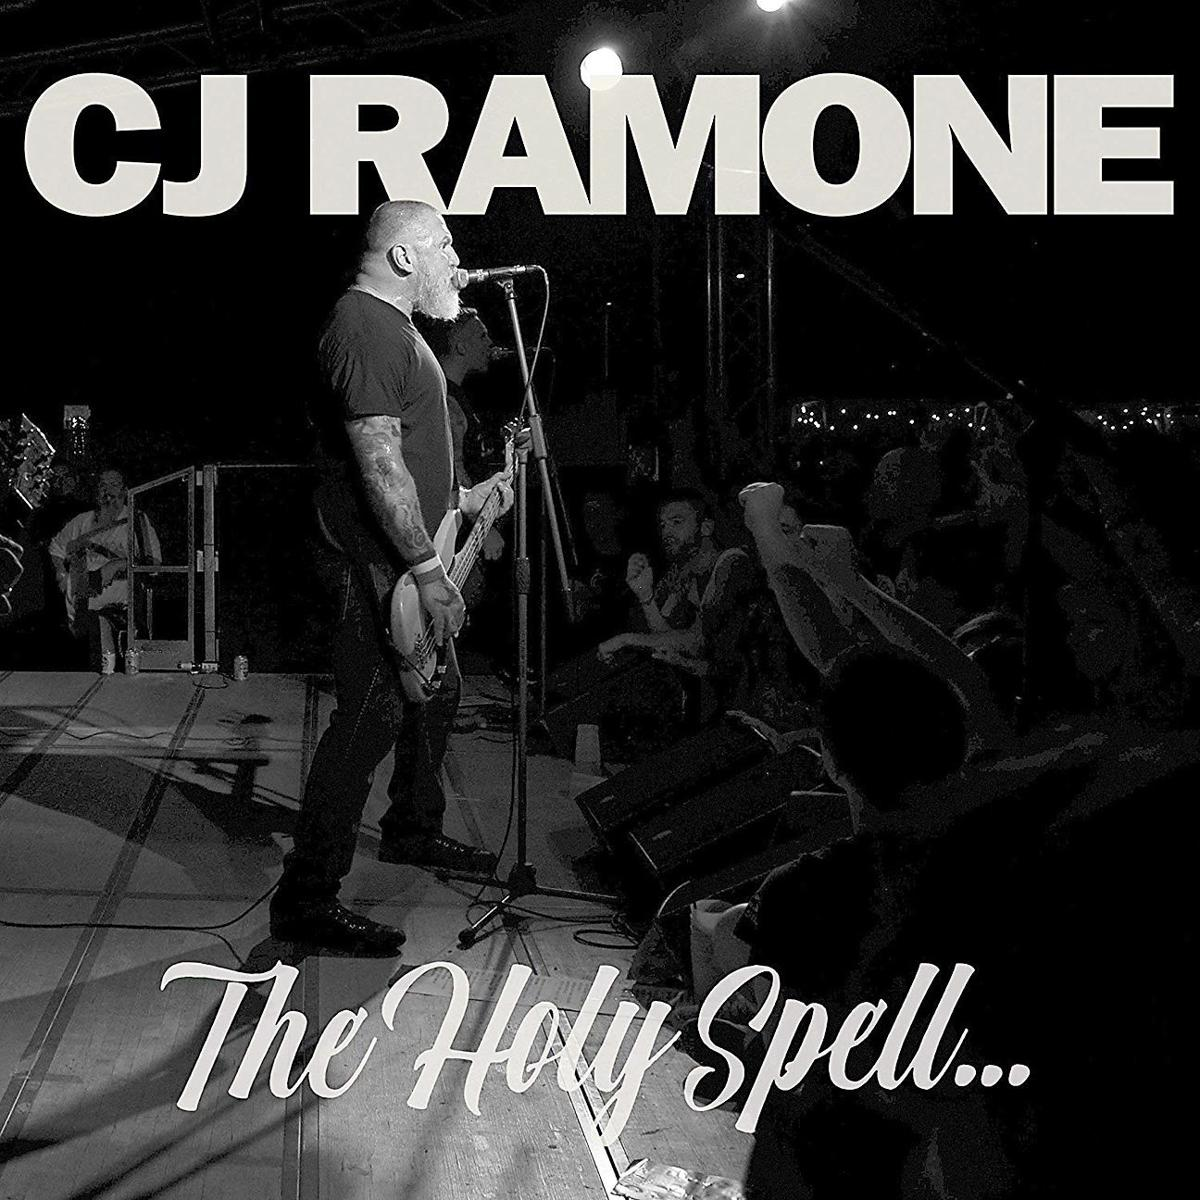 Music review: C.J. Ramone - 'The Holy Spell...'